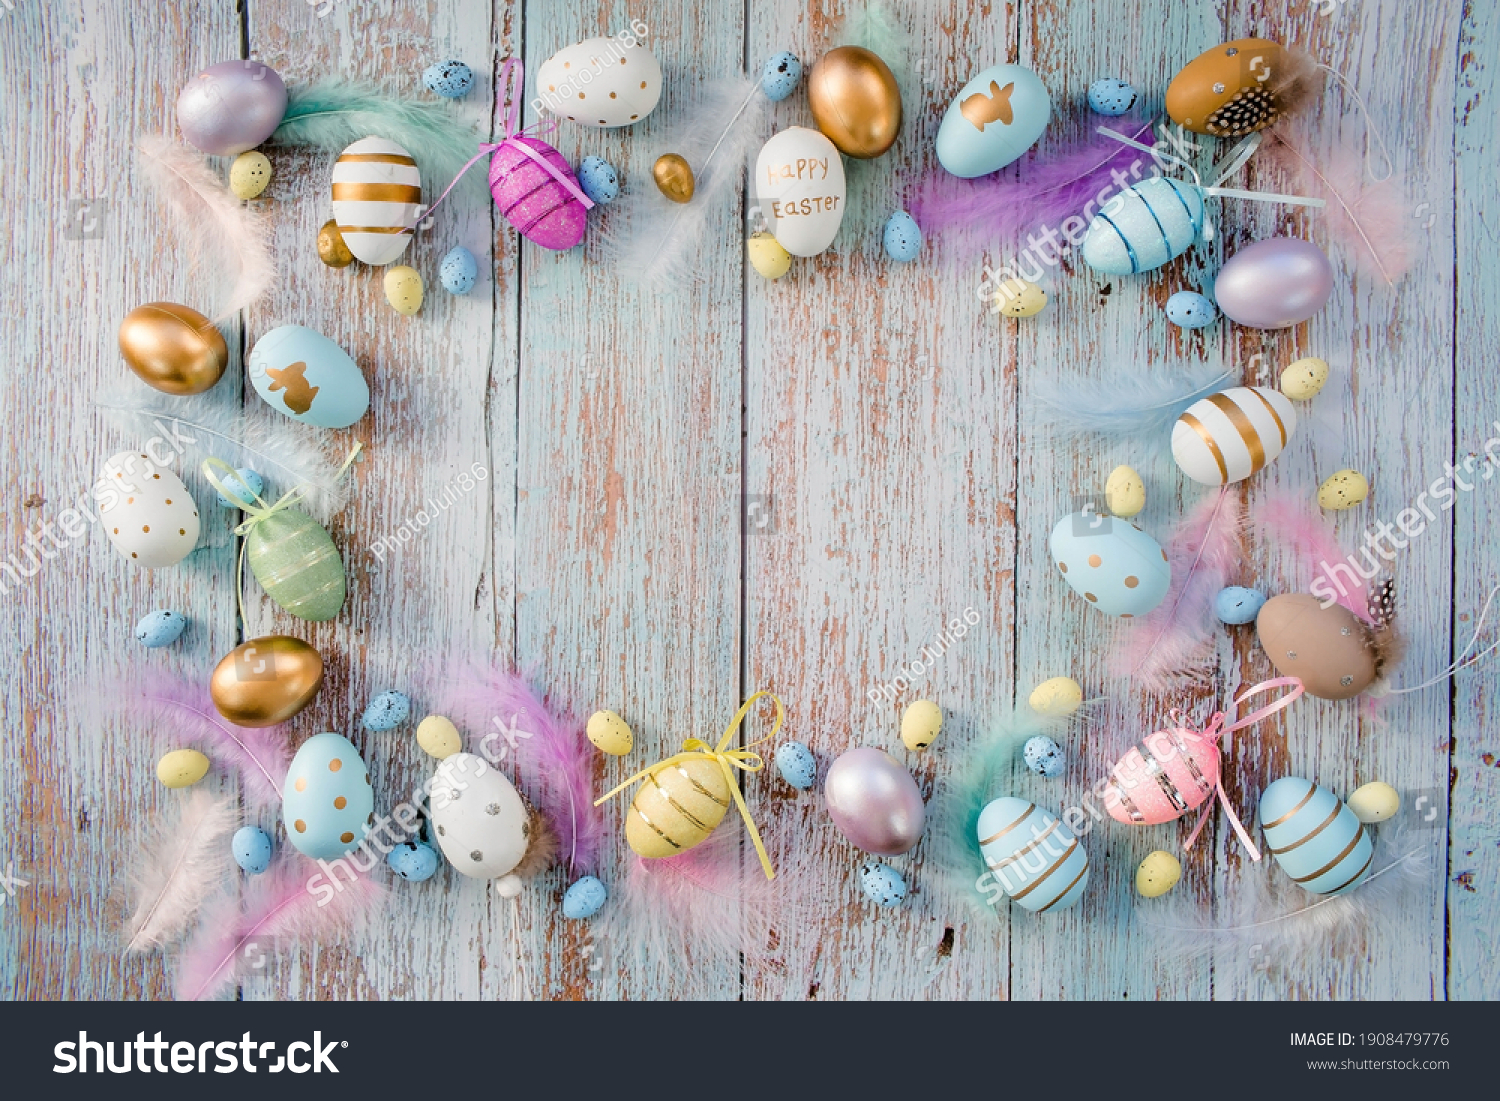 Banner. Easter frame with eggs and feathers on a blue wooden background. The minimal concept. Top view. Card with a copy of the place for the text. #1908479776